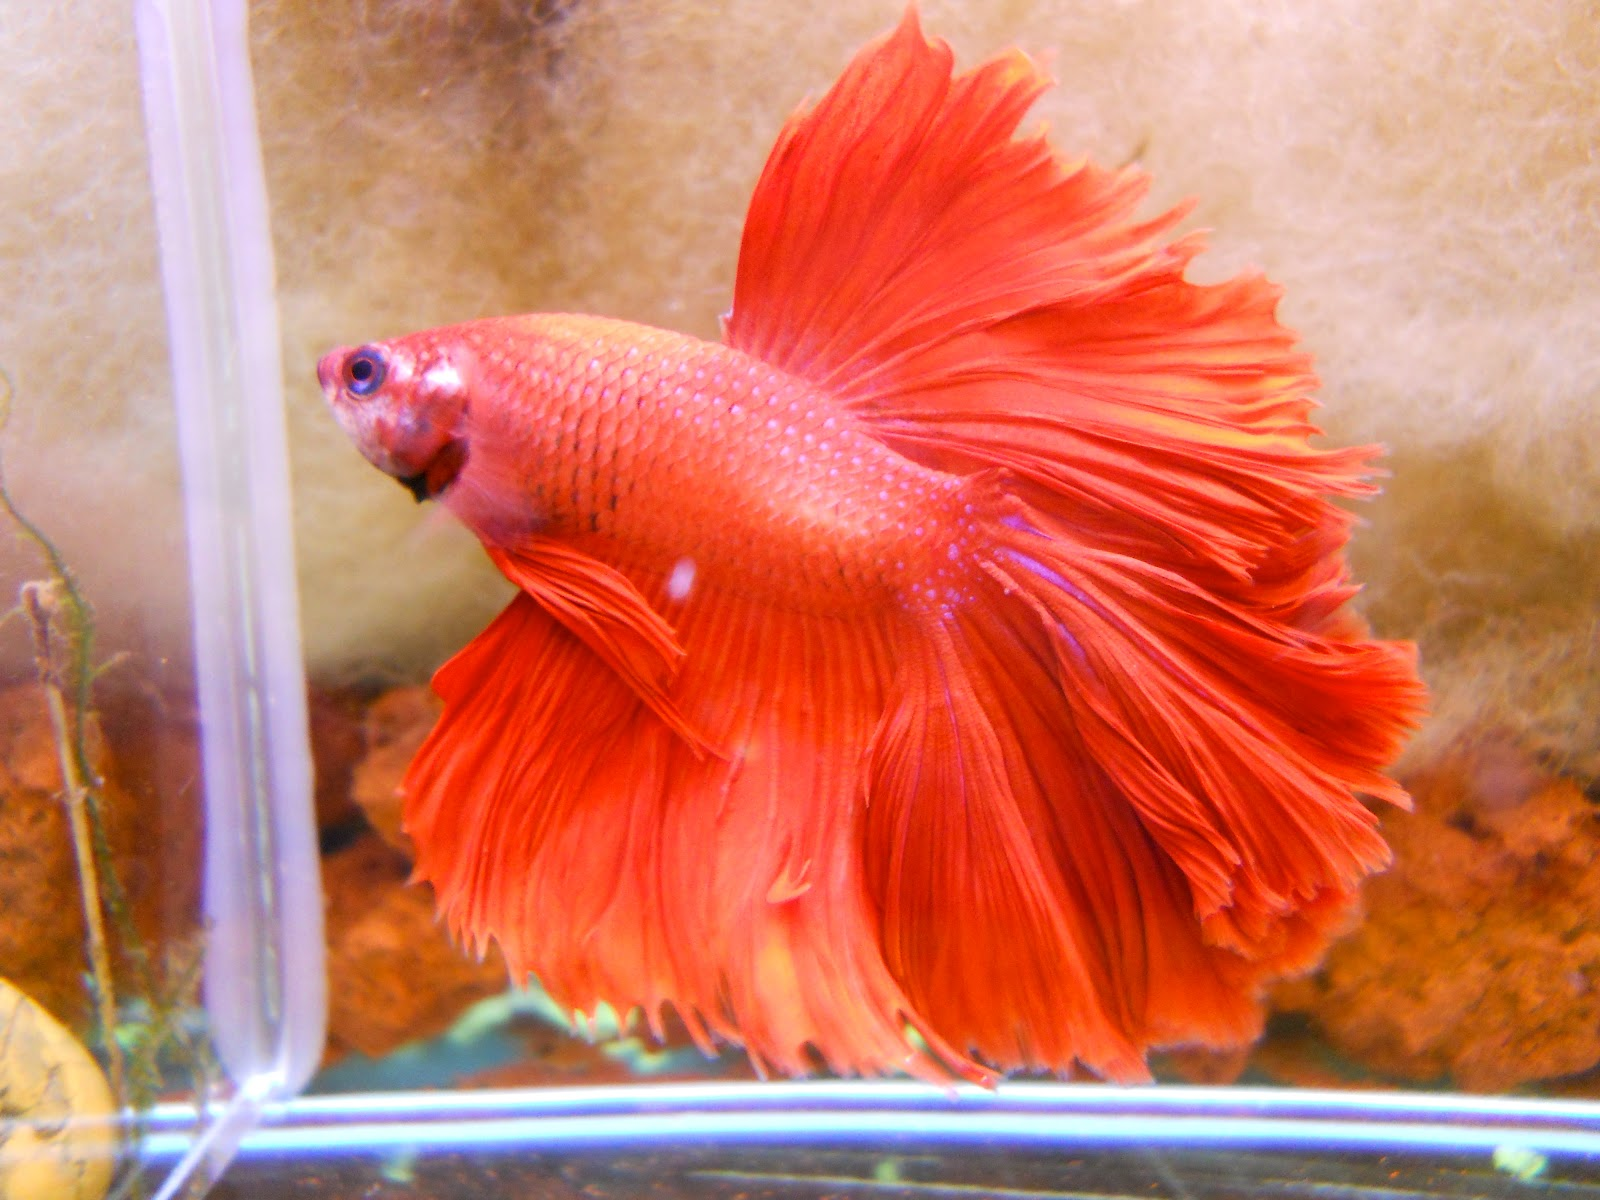 Cute live wallpaper betta fish beauty 4 sciox Image collections